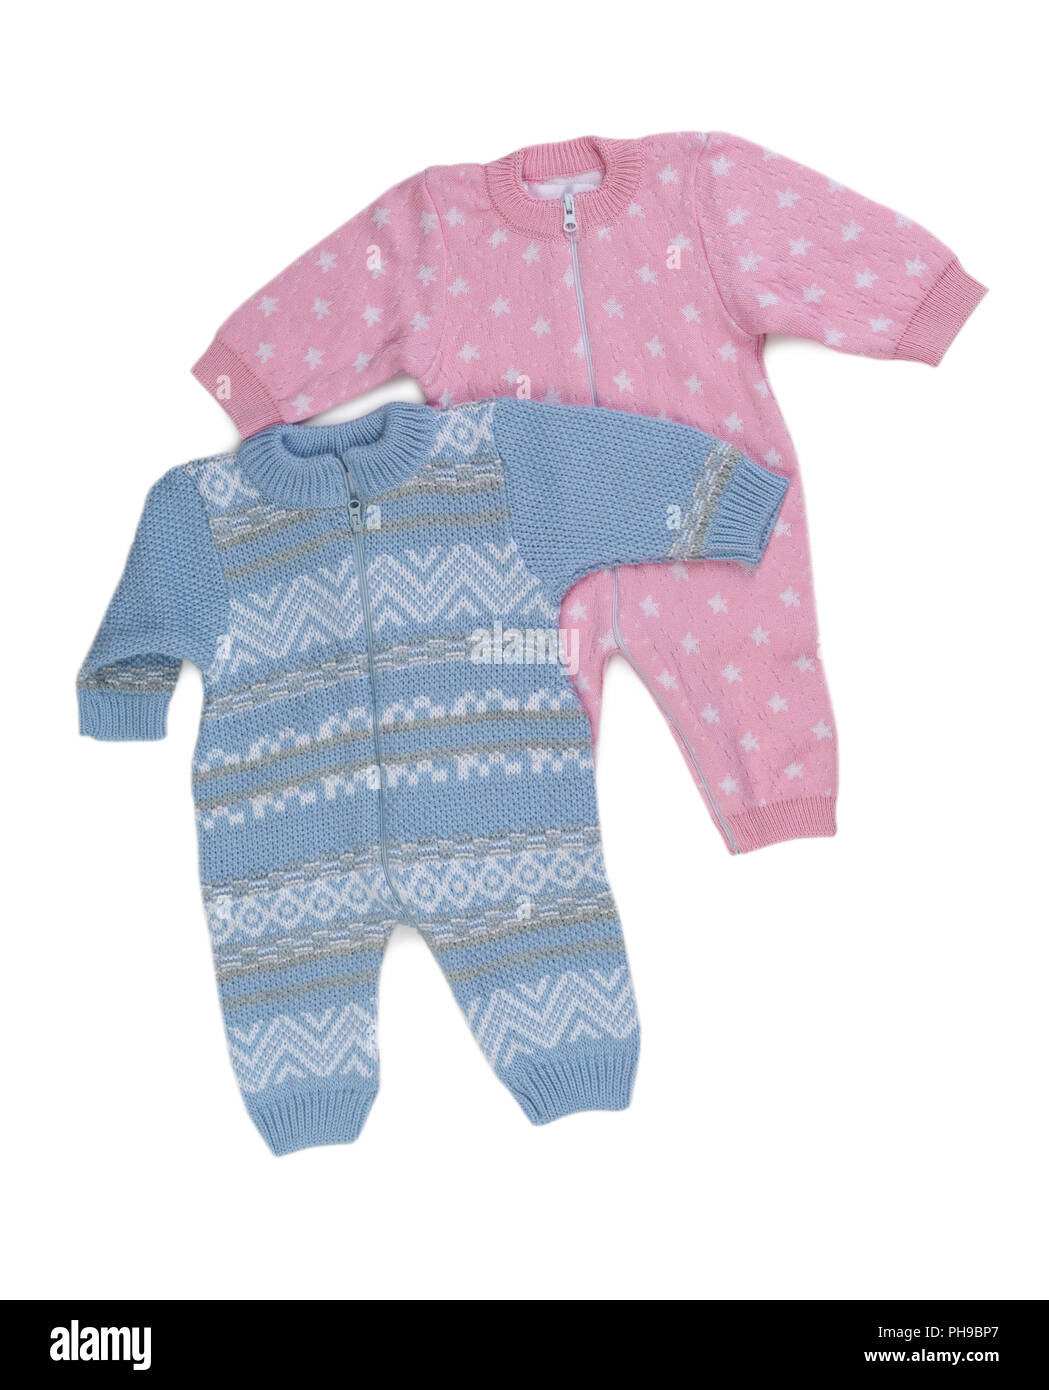 Two knitted pink and blue rompers. - Stock Image